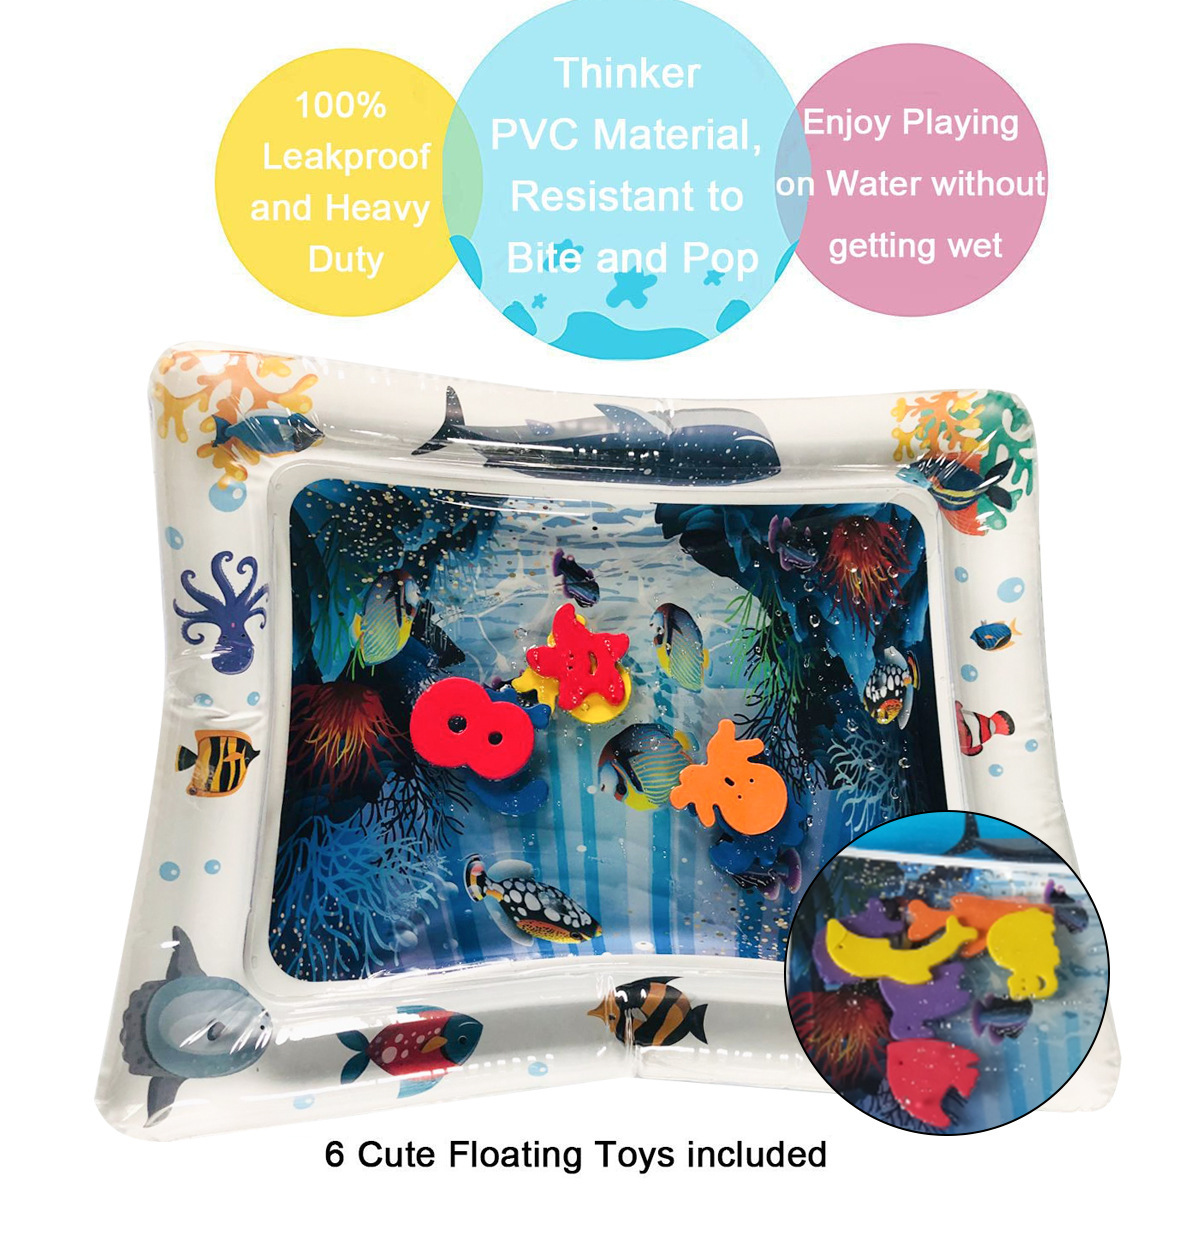 HTB1tRFbMQzoK1RjSZFlq6yi4VXaV 2019 Creative Water Mat Baby Inflatable Patted Pad Baby Inflatable Water Cushion Infant Play Mat Toddler Funny Pat Pad Toys